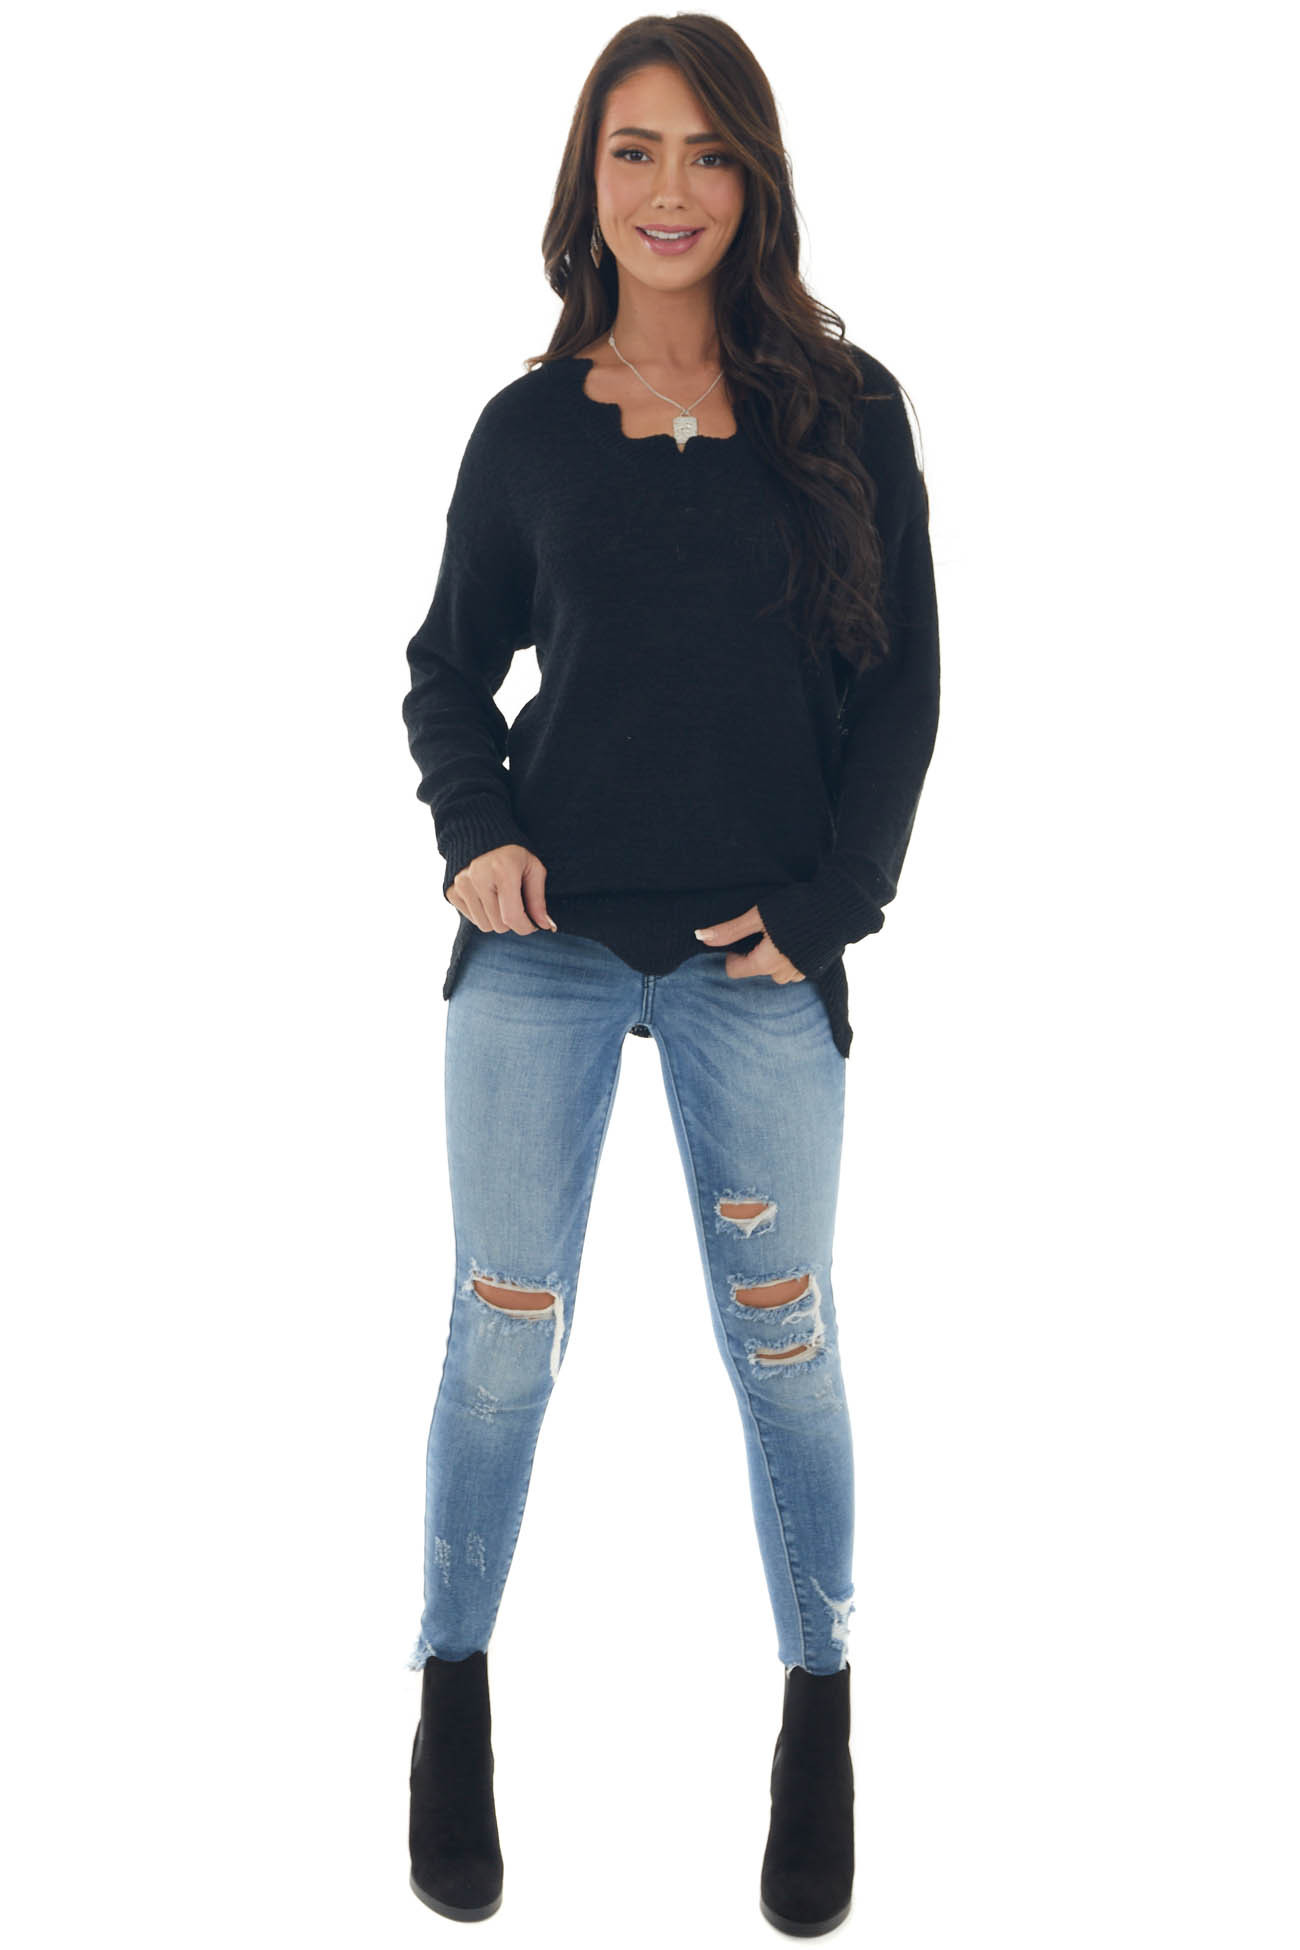 Black V Neck Sweater with Scallop Details